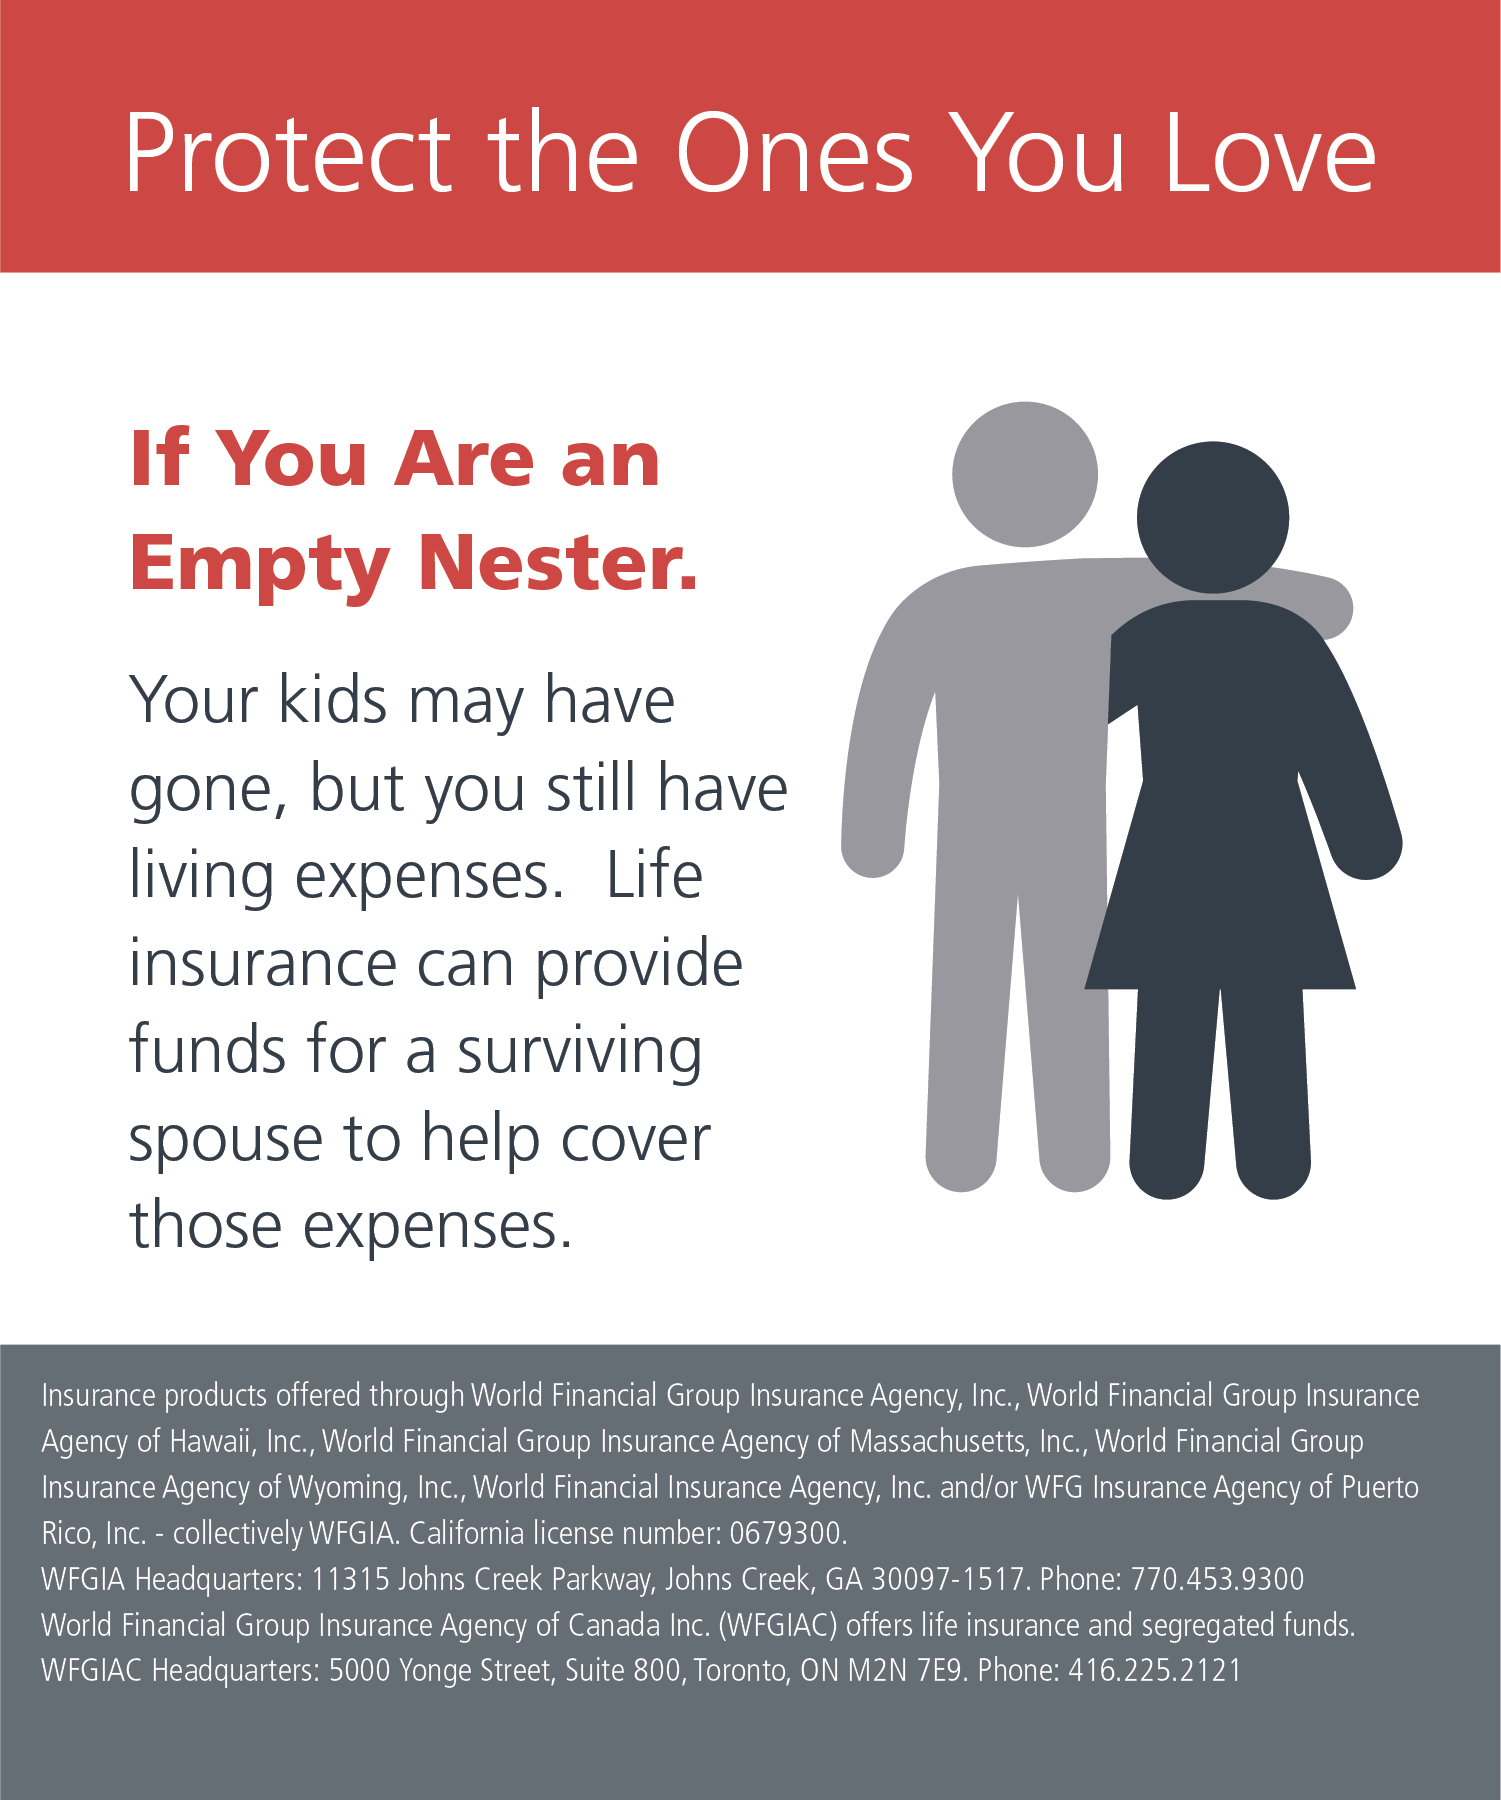 Pin By Wfg World Financial Group On Protect The Ones You Love